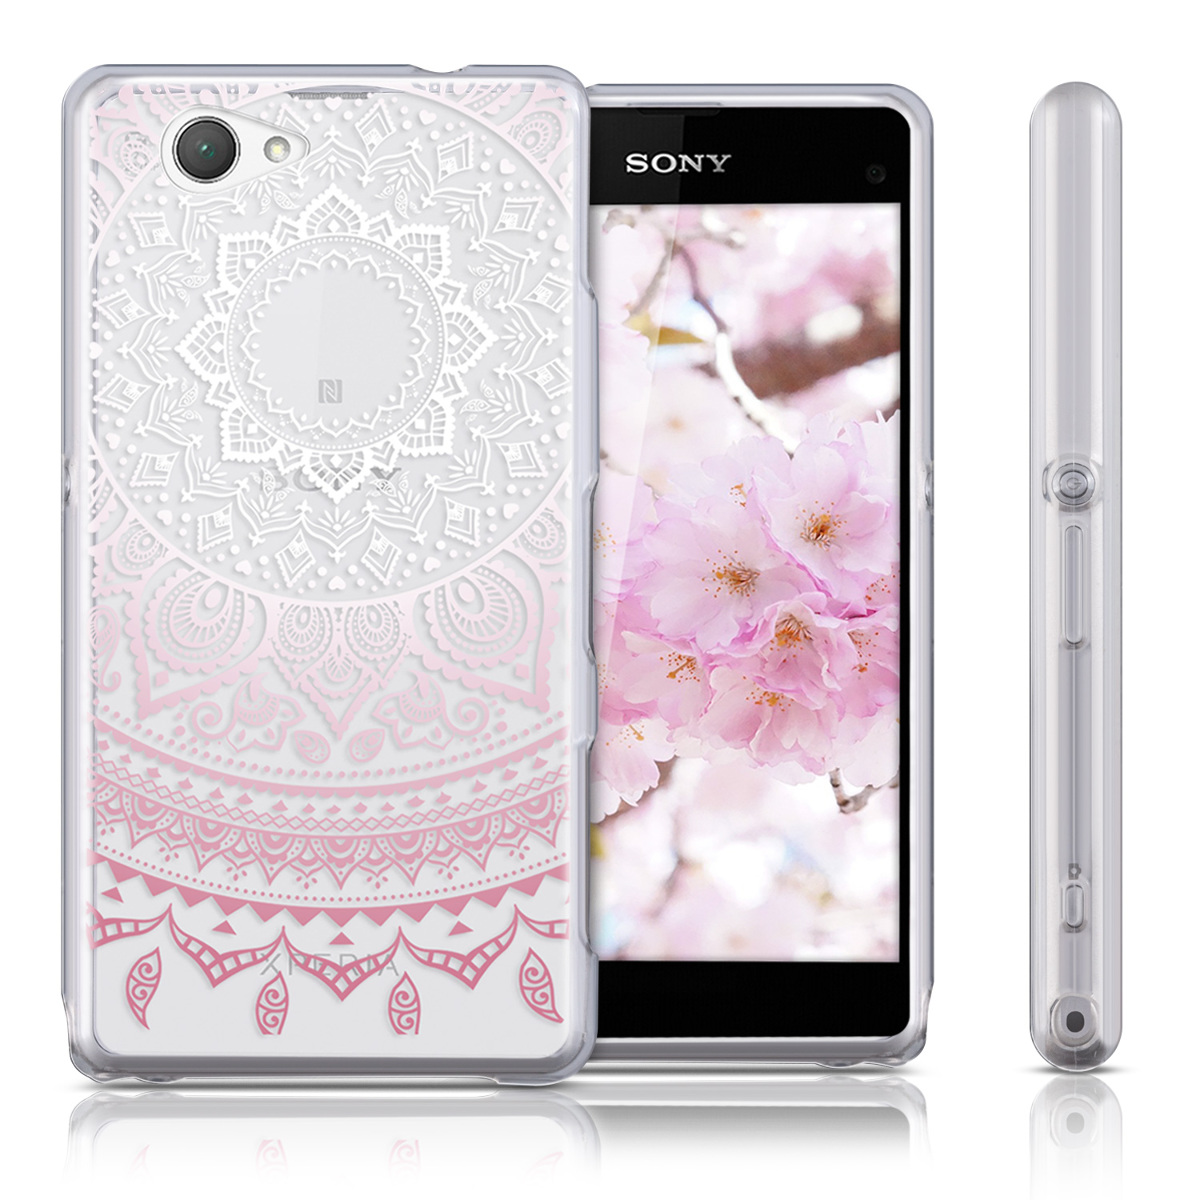 TPU SILICONE CRYSTAL CASE FOR SONY XPERIA Z1 COMPACT SOFT ... | 1200 x 1200 jpeg 310kB